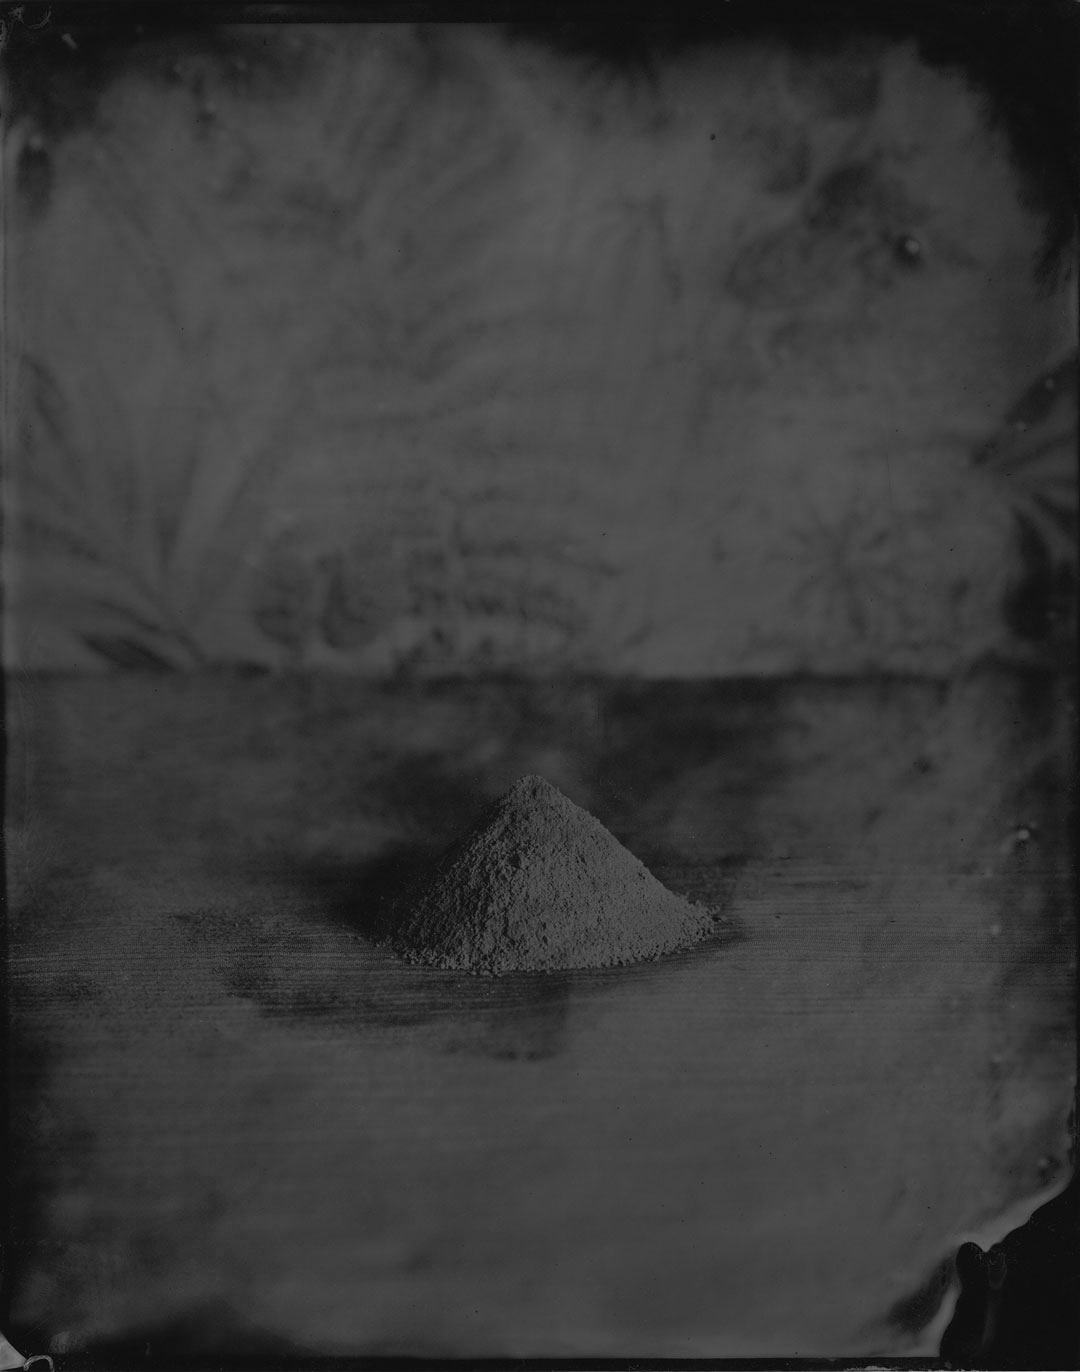 Tintype, 8x10 inch, [sold]